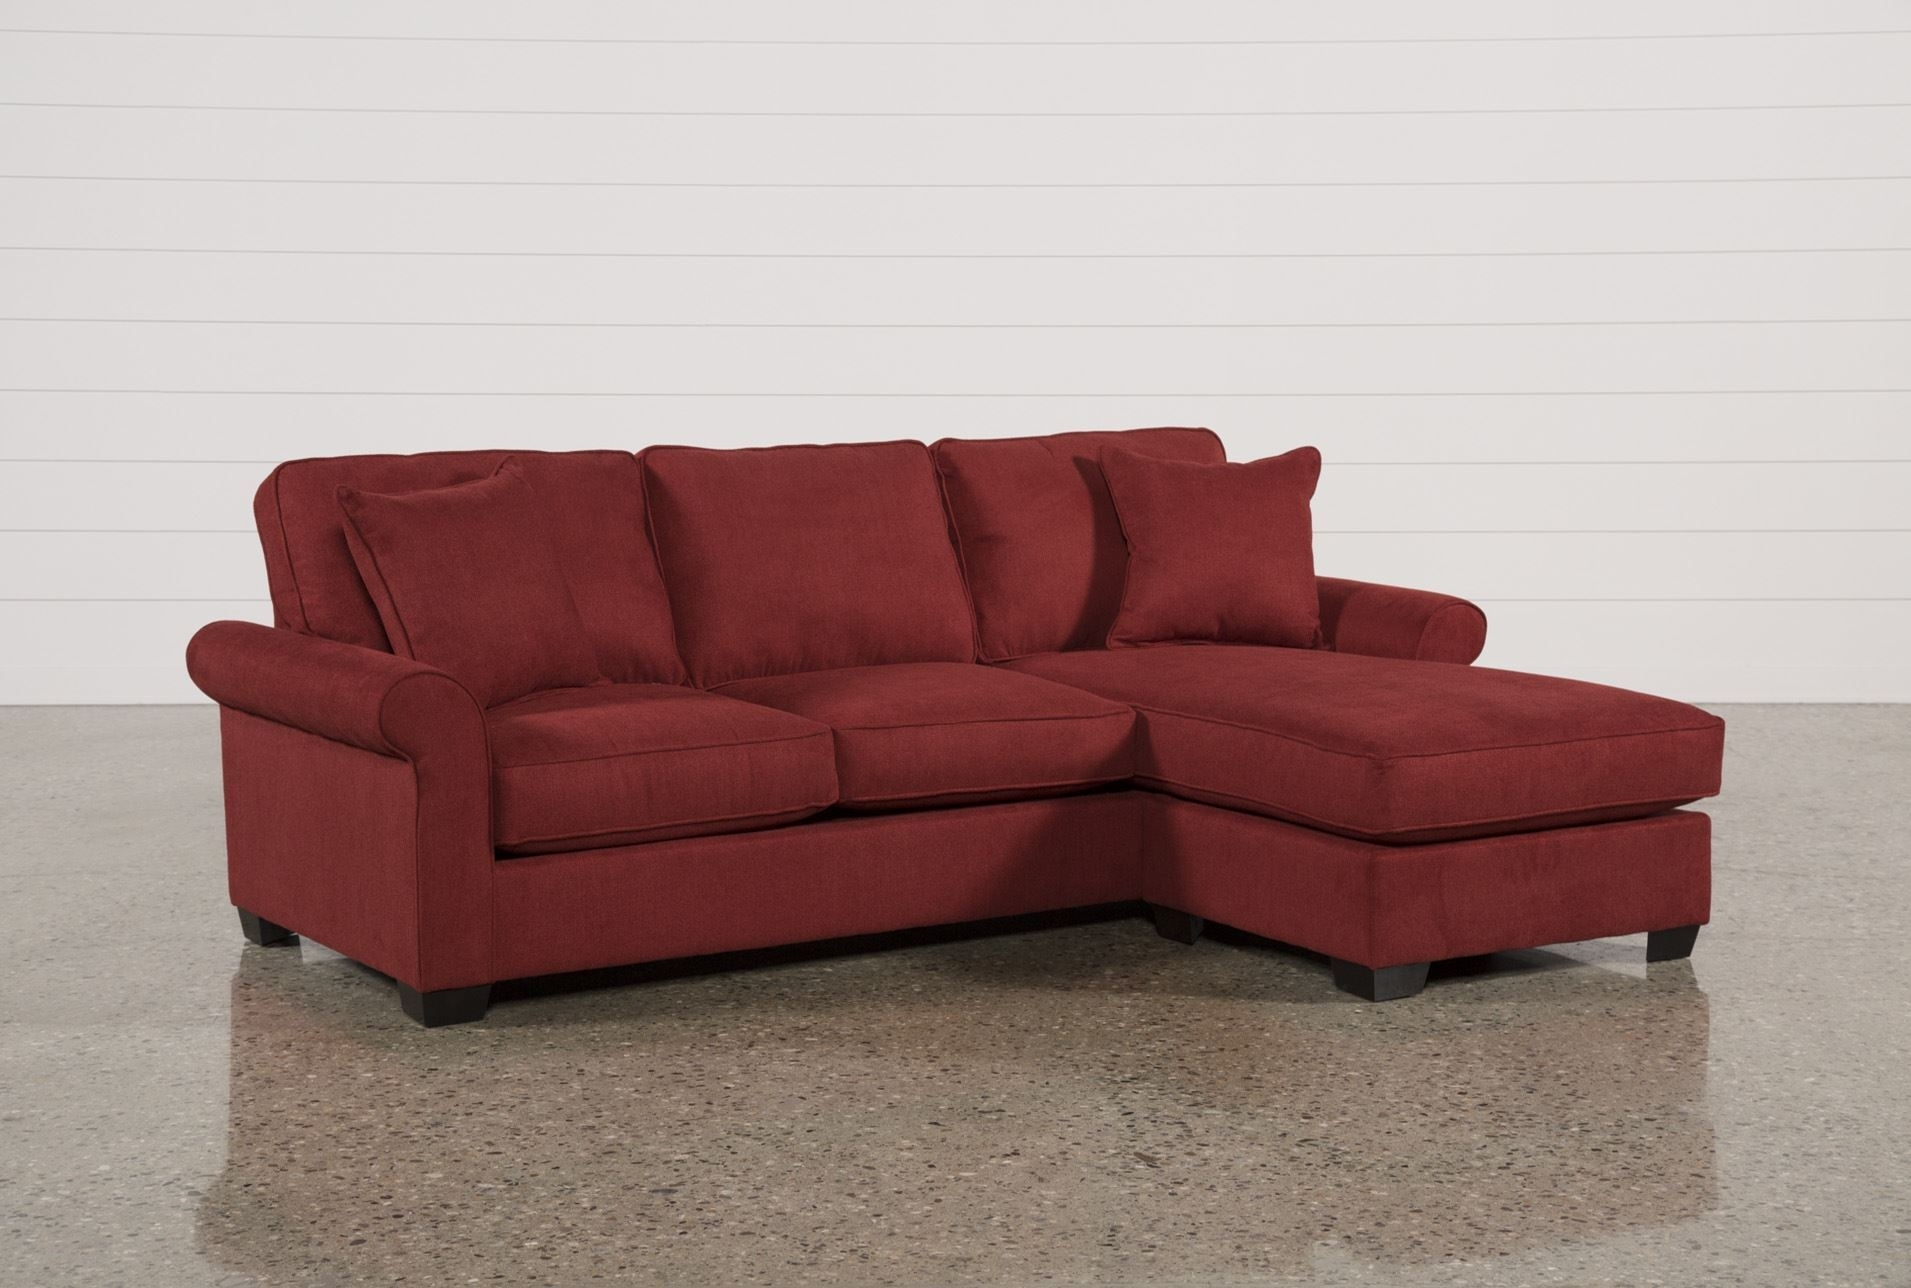 Sofa Sectional Leather Samuel Contemporary Modern With Recliners Regarding Kijiji Edmonton Sectional Sofas (Image 10 of 10)